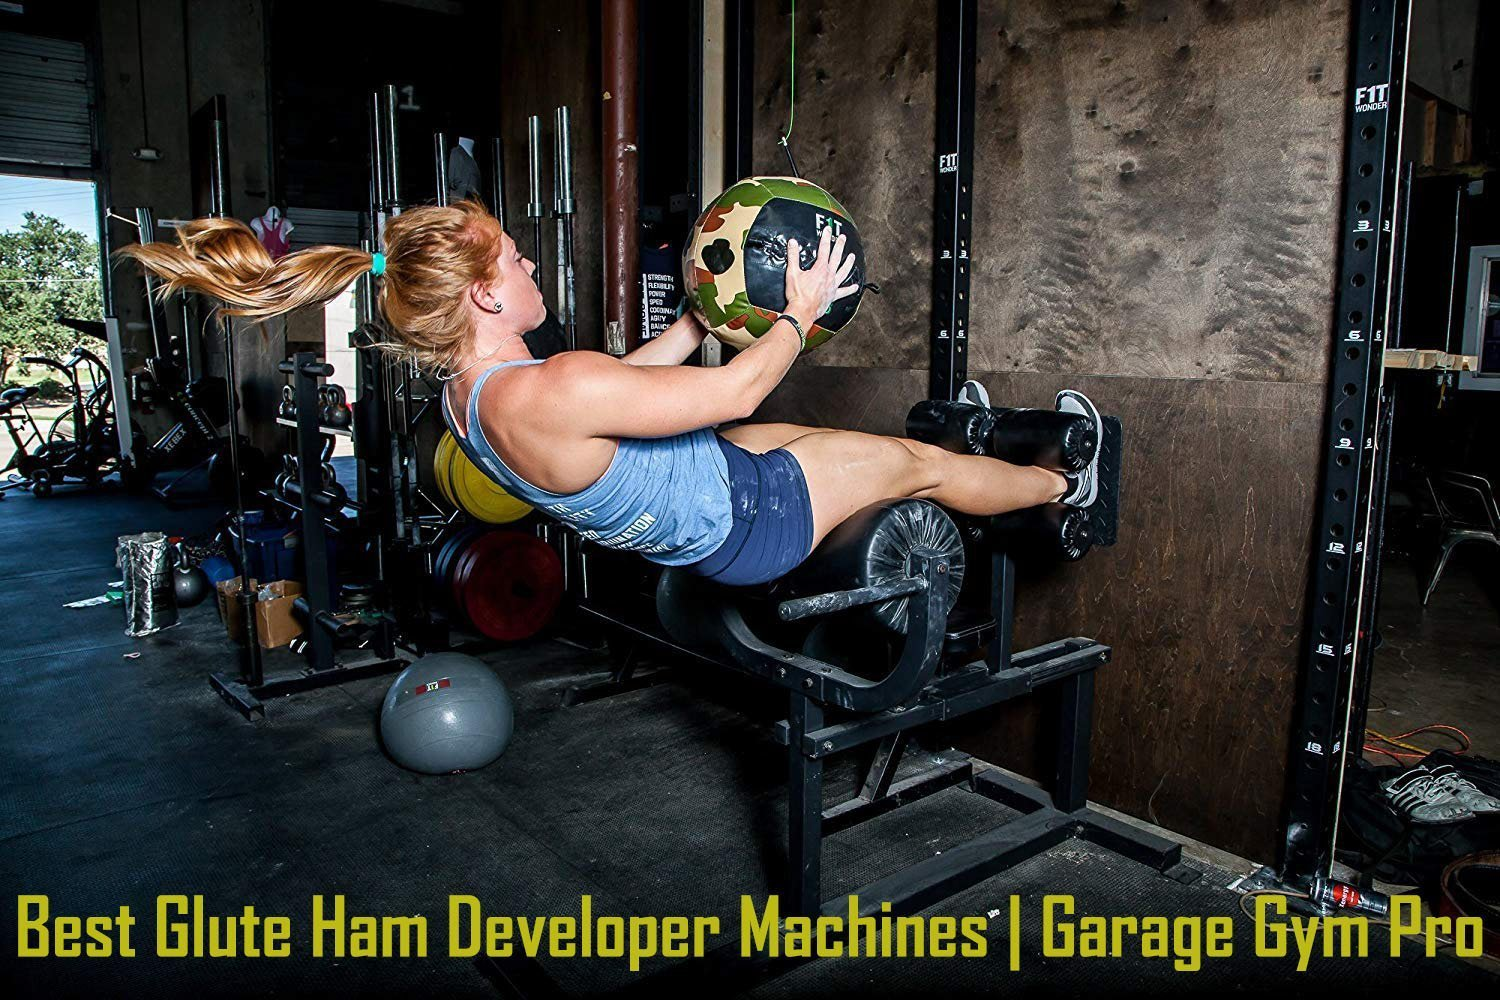 Best Glute Ham Developer Machines